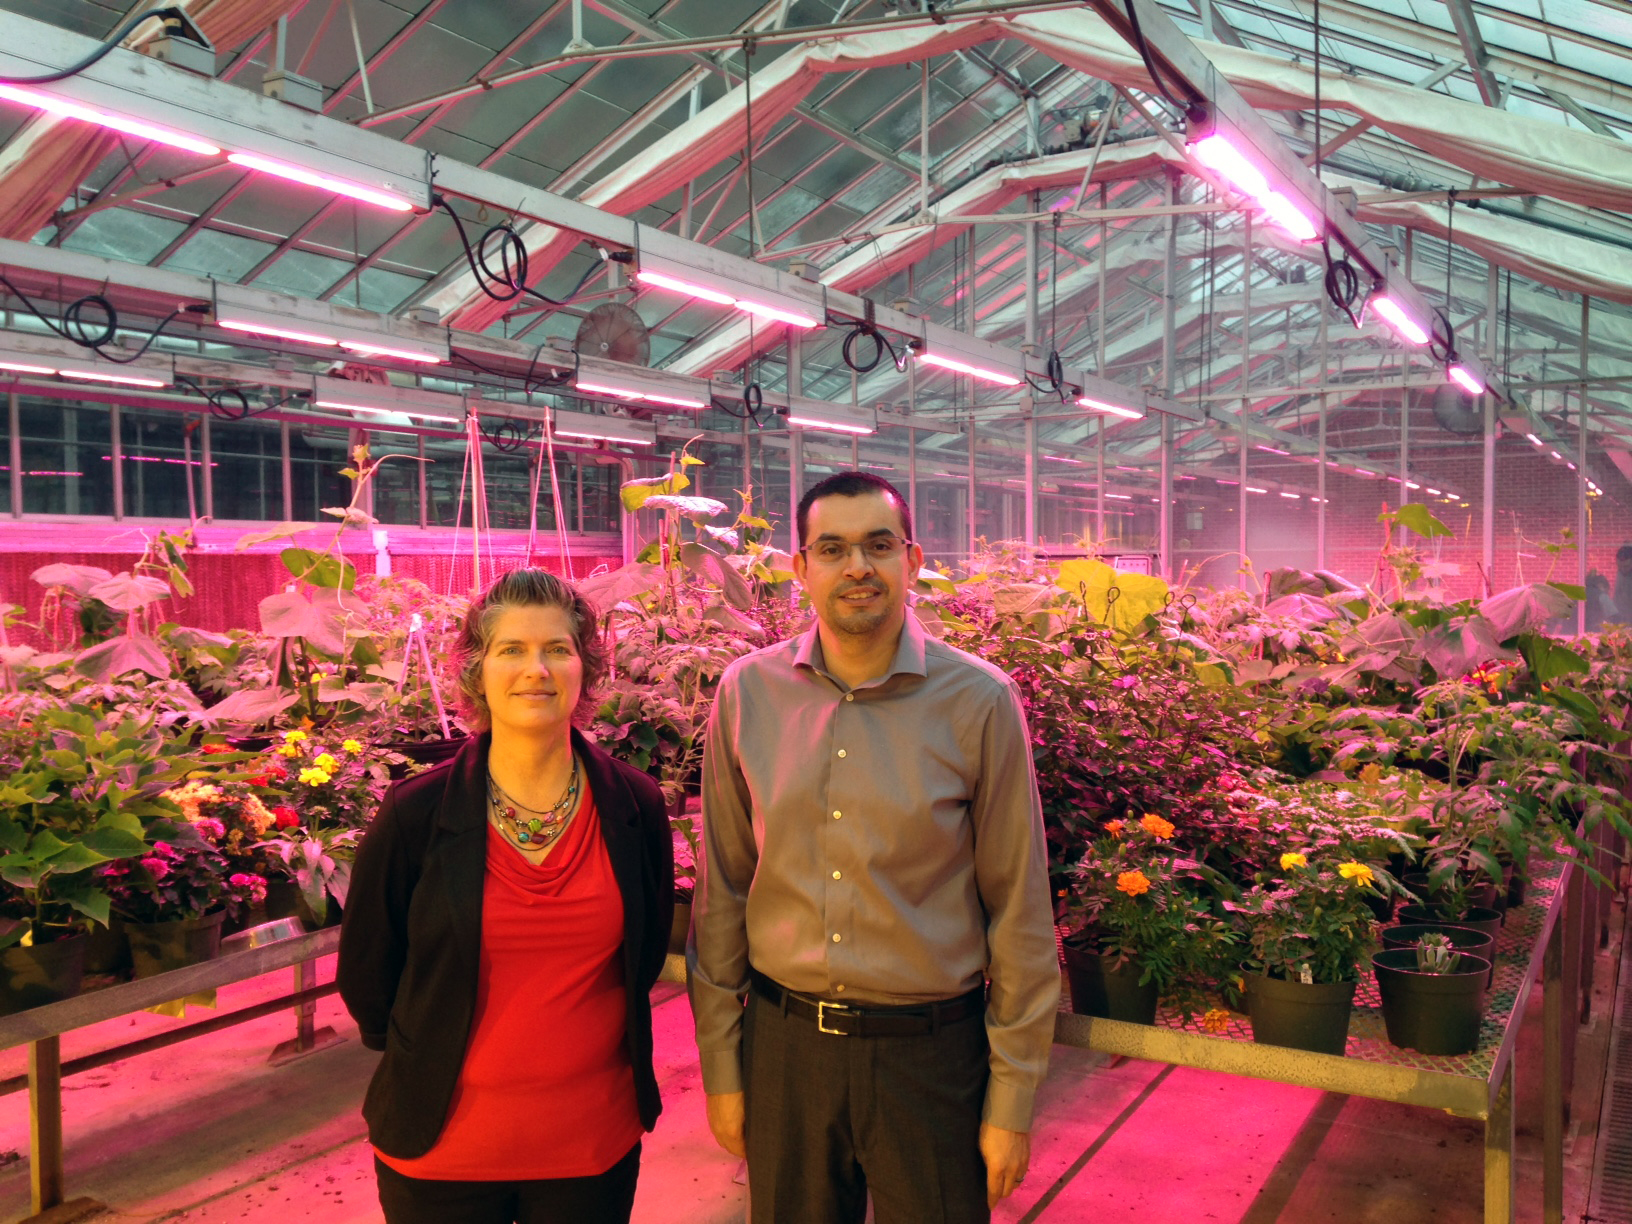 Department of Horticulture faculty members Kristin Getter and Roberto Lopez in one of the teaching greenhouses at MSU.